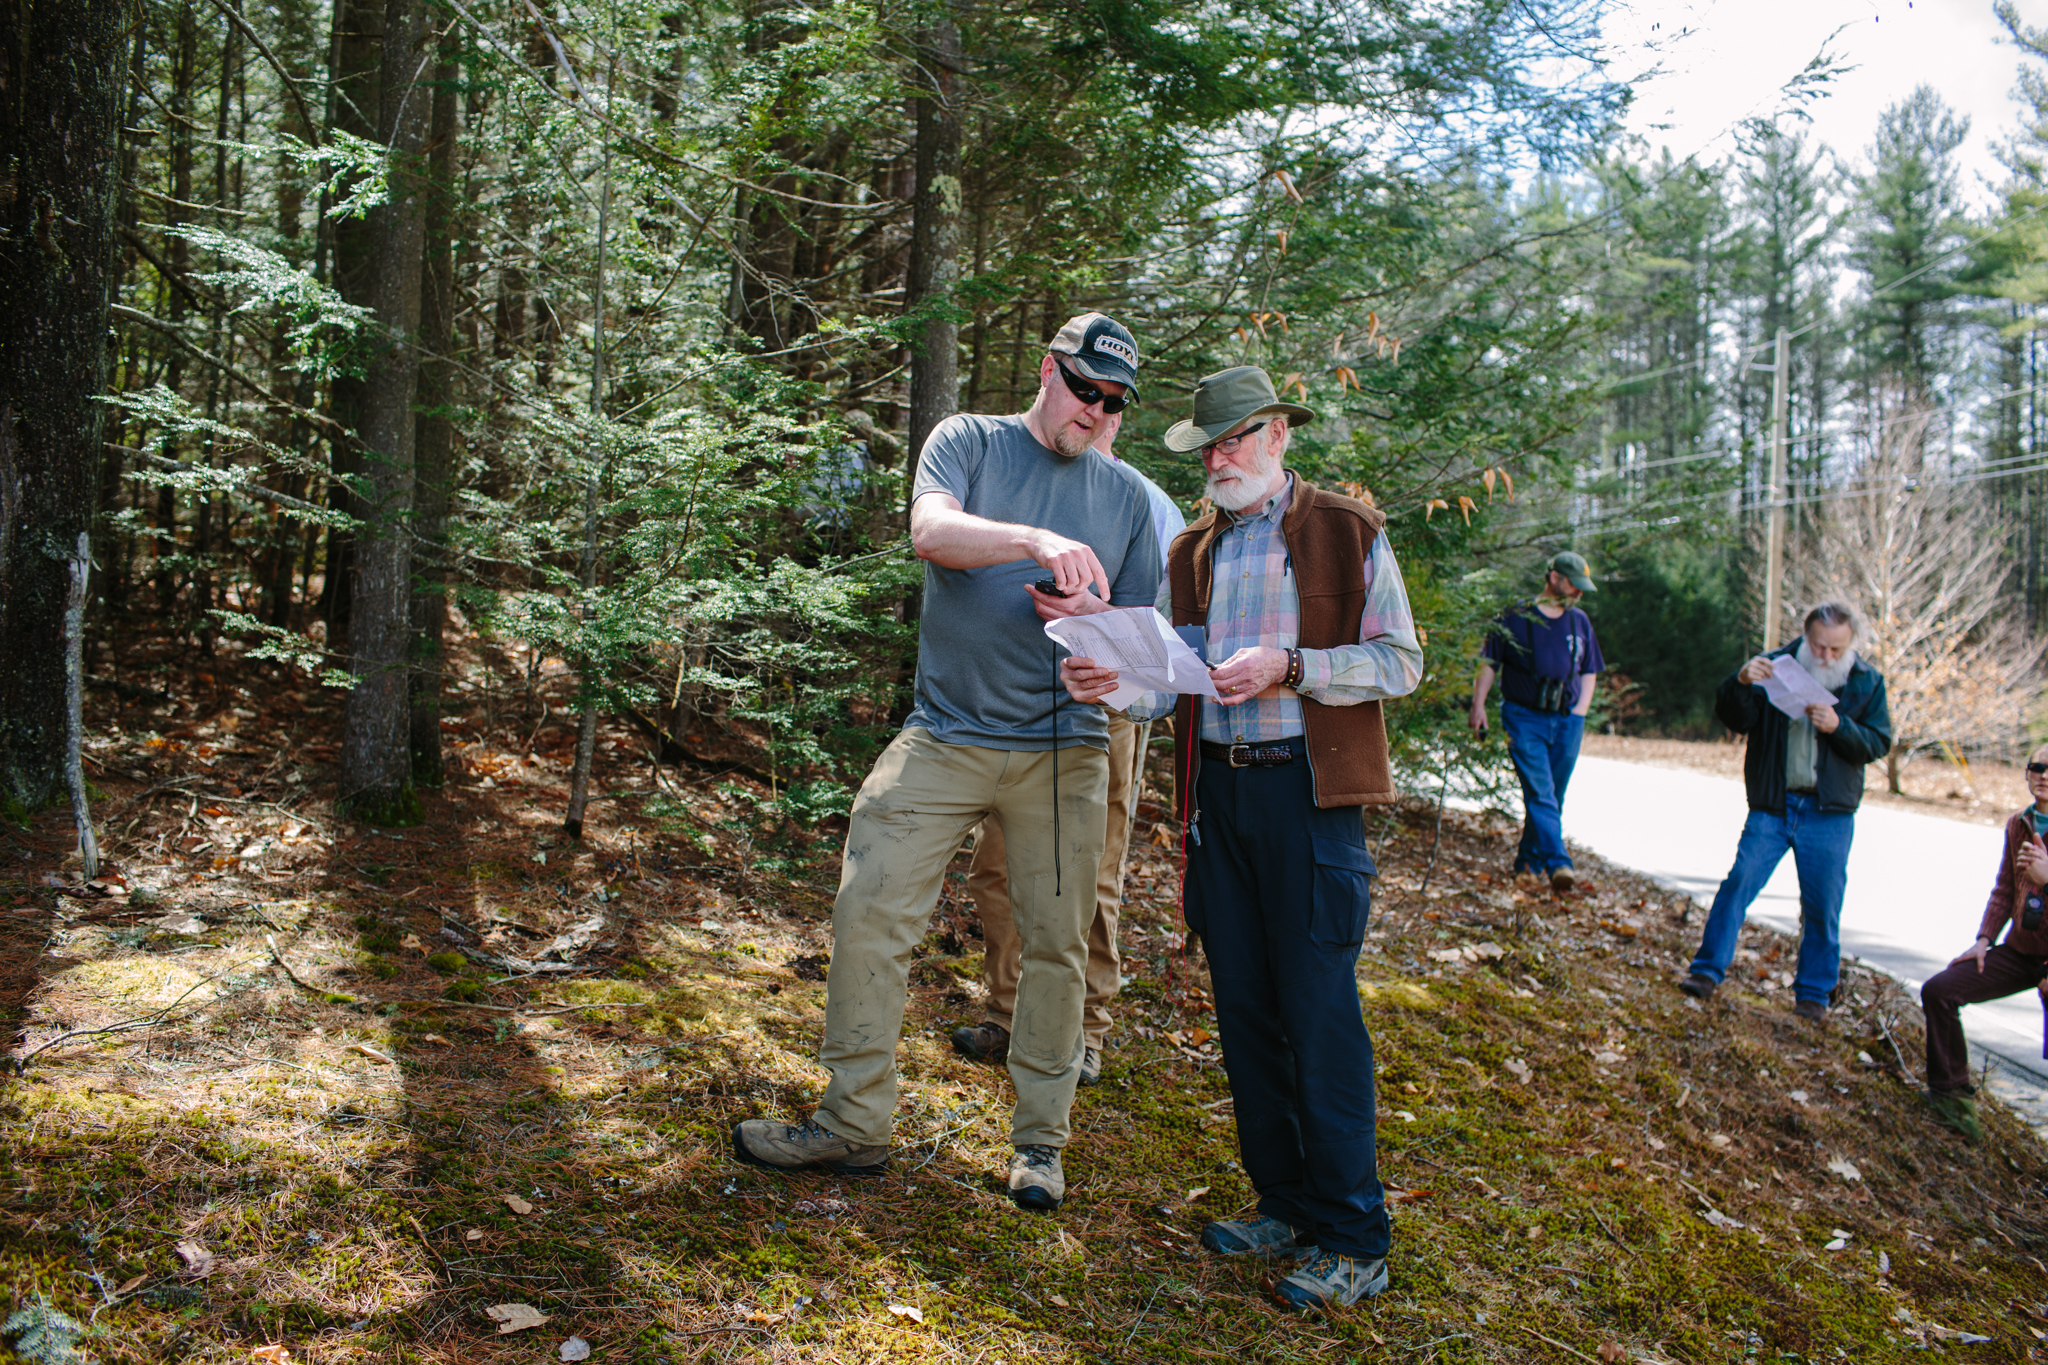 Outdoor conservation volunteers navigate property boundaries